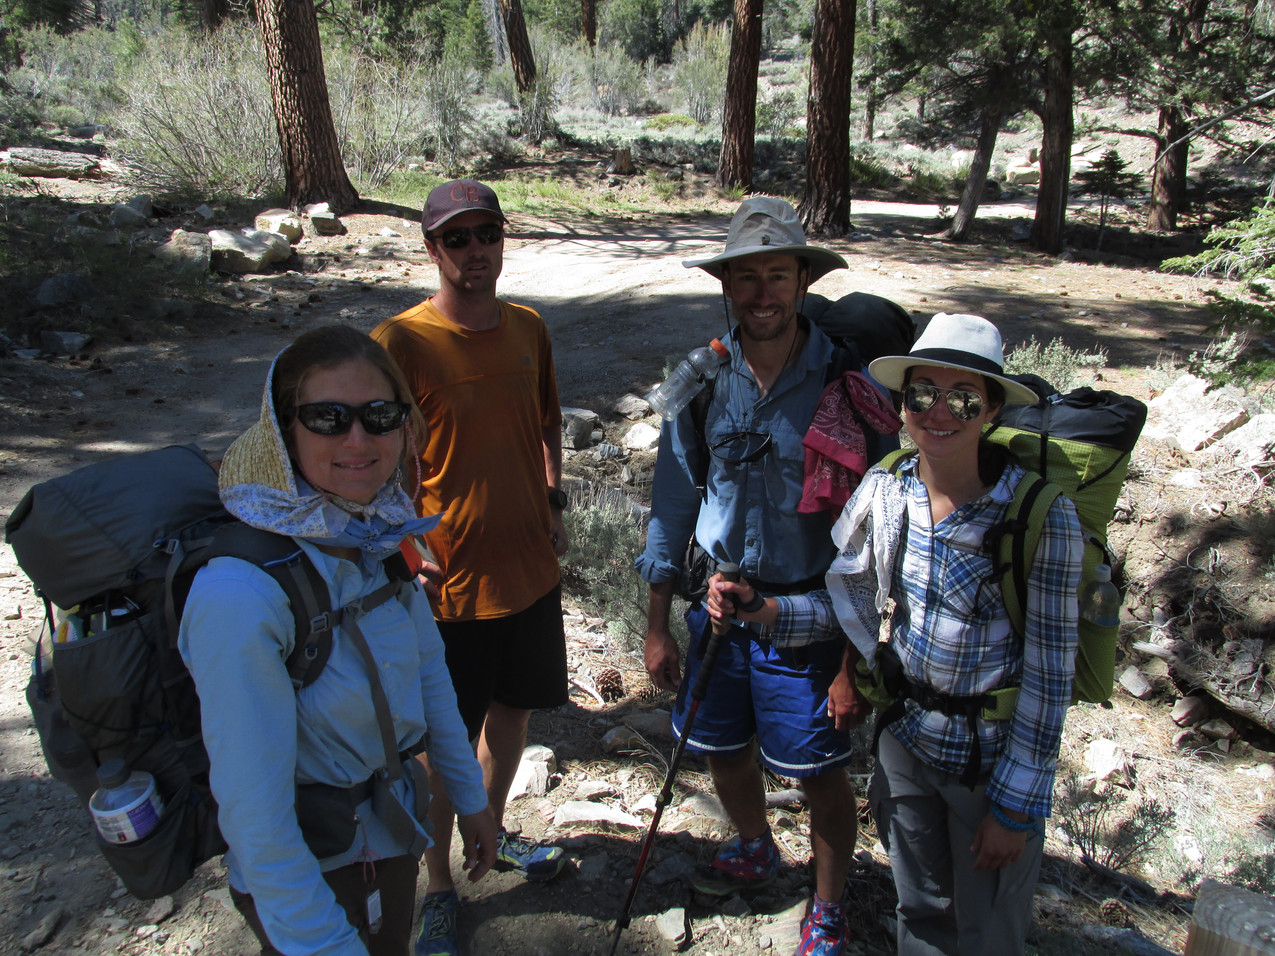 Team Fire Closure without Town Food who took the picture.  From the left, Pitter Patter, Pathfinder, Bobber, and Wonky (later Sprinkler).  Now that we got back to the PCT, we disbanded and I took off solo.